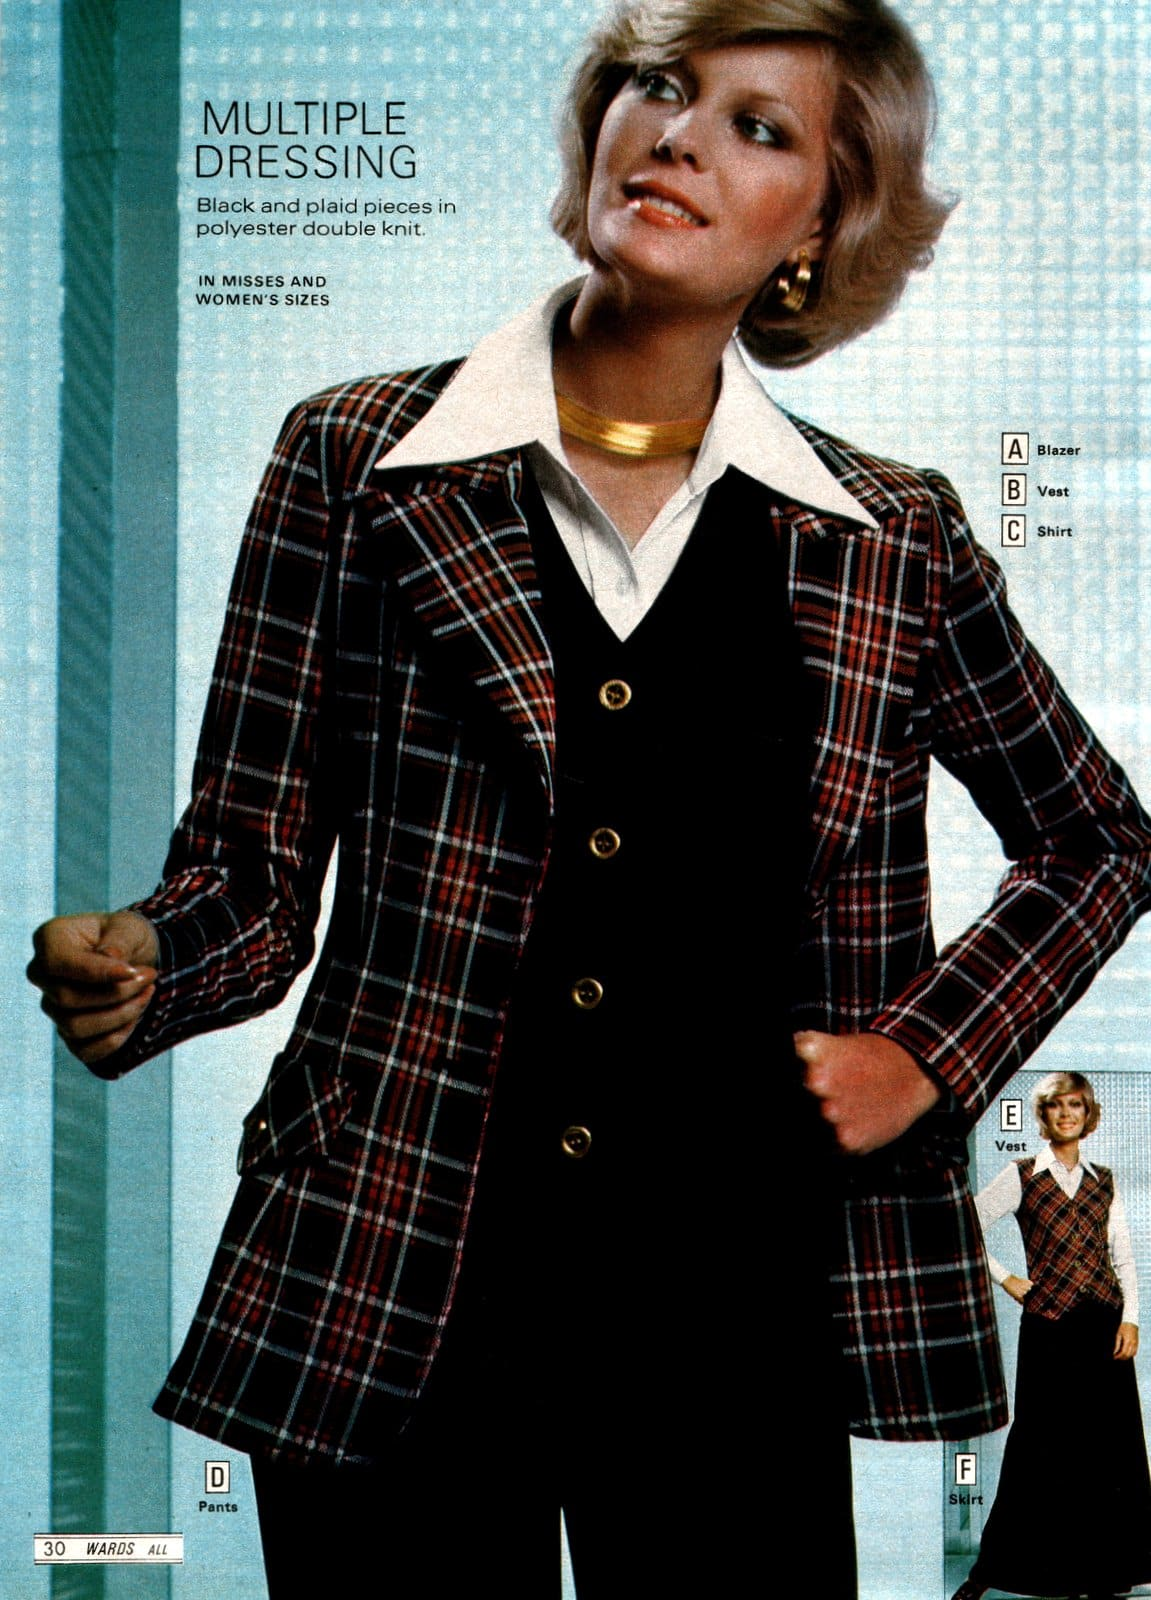 Retro 1970s suits for women - plaid and black with wide color